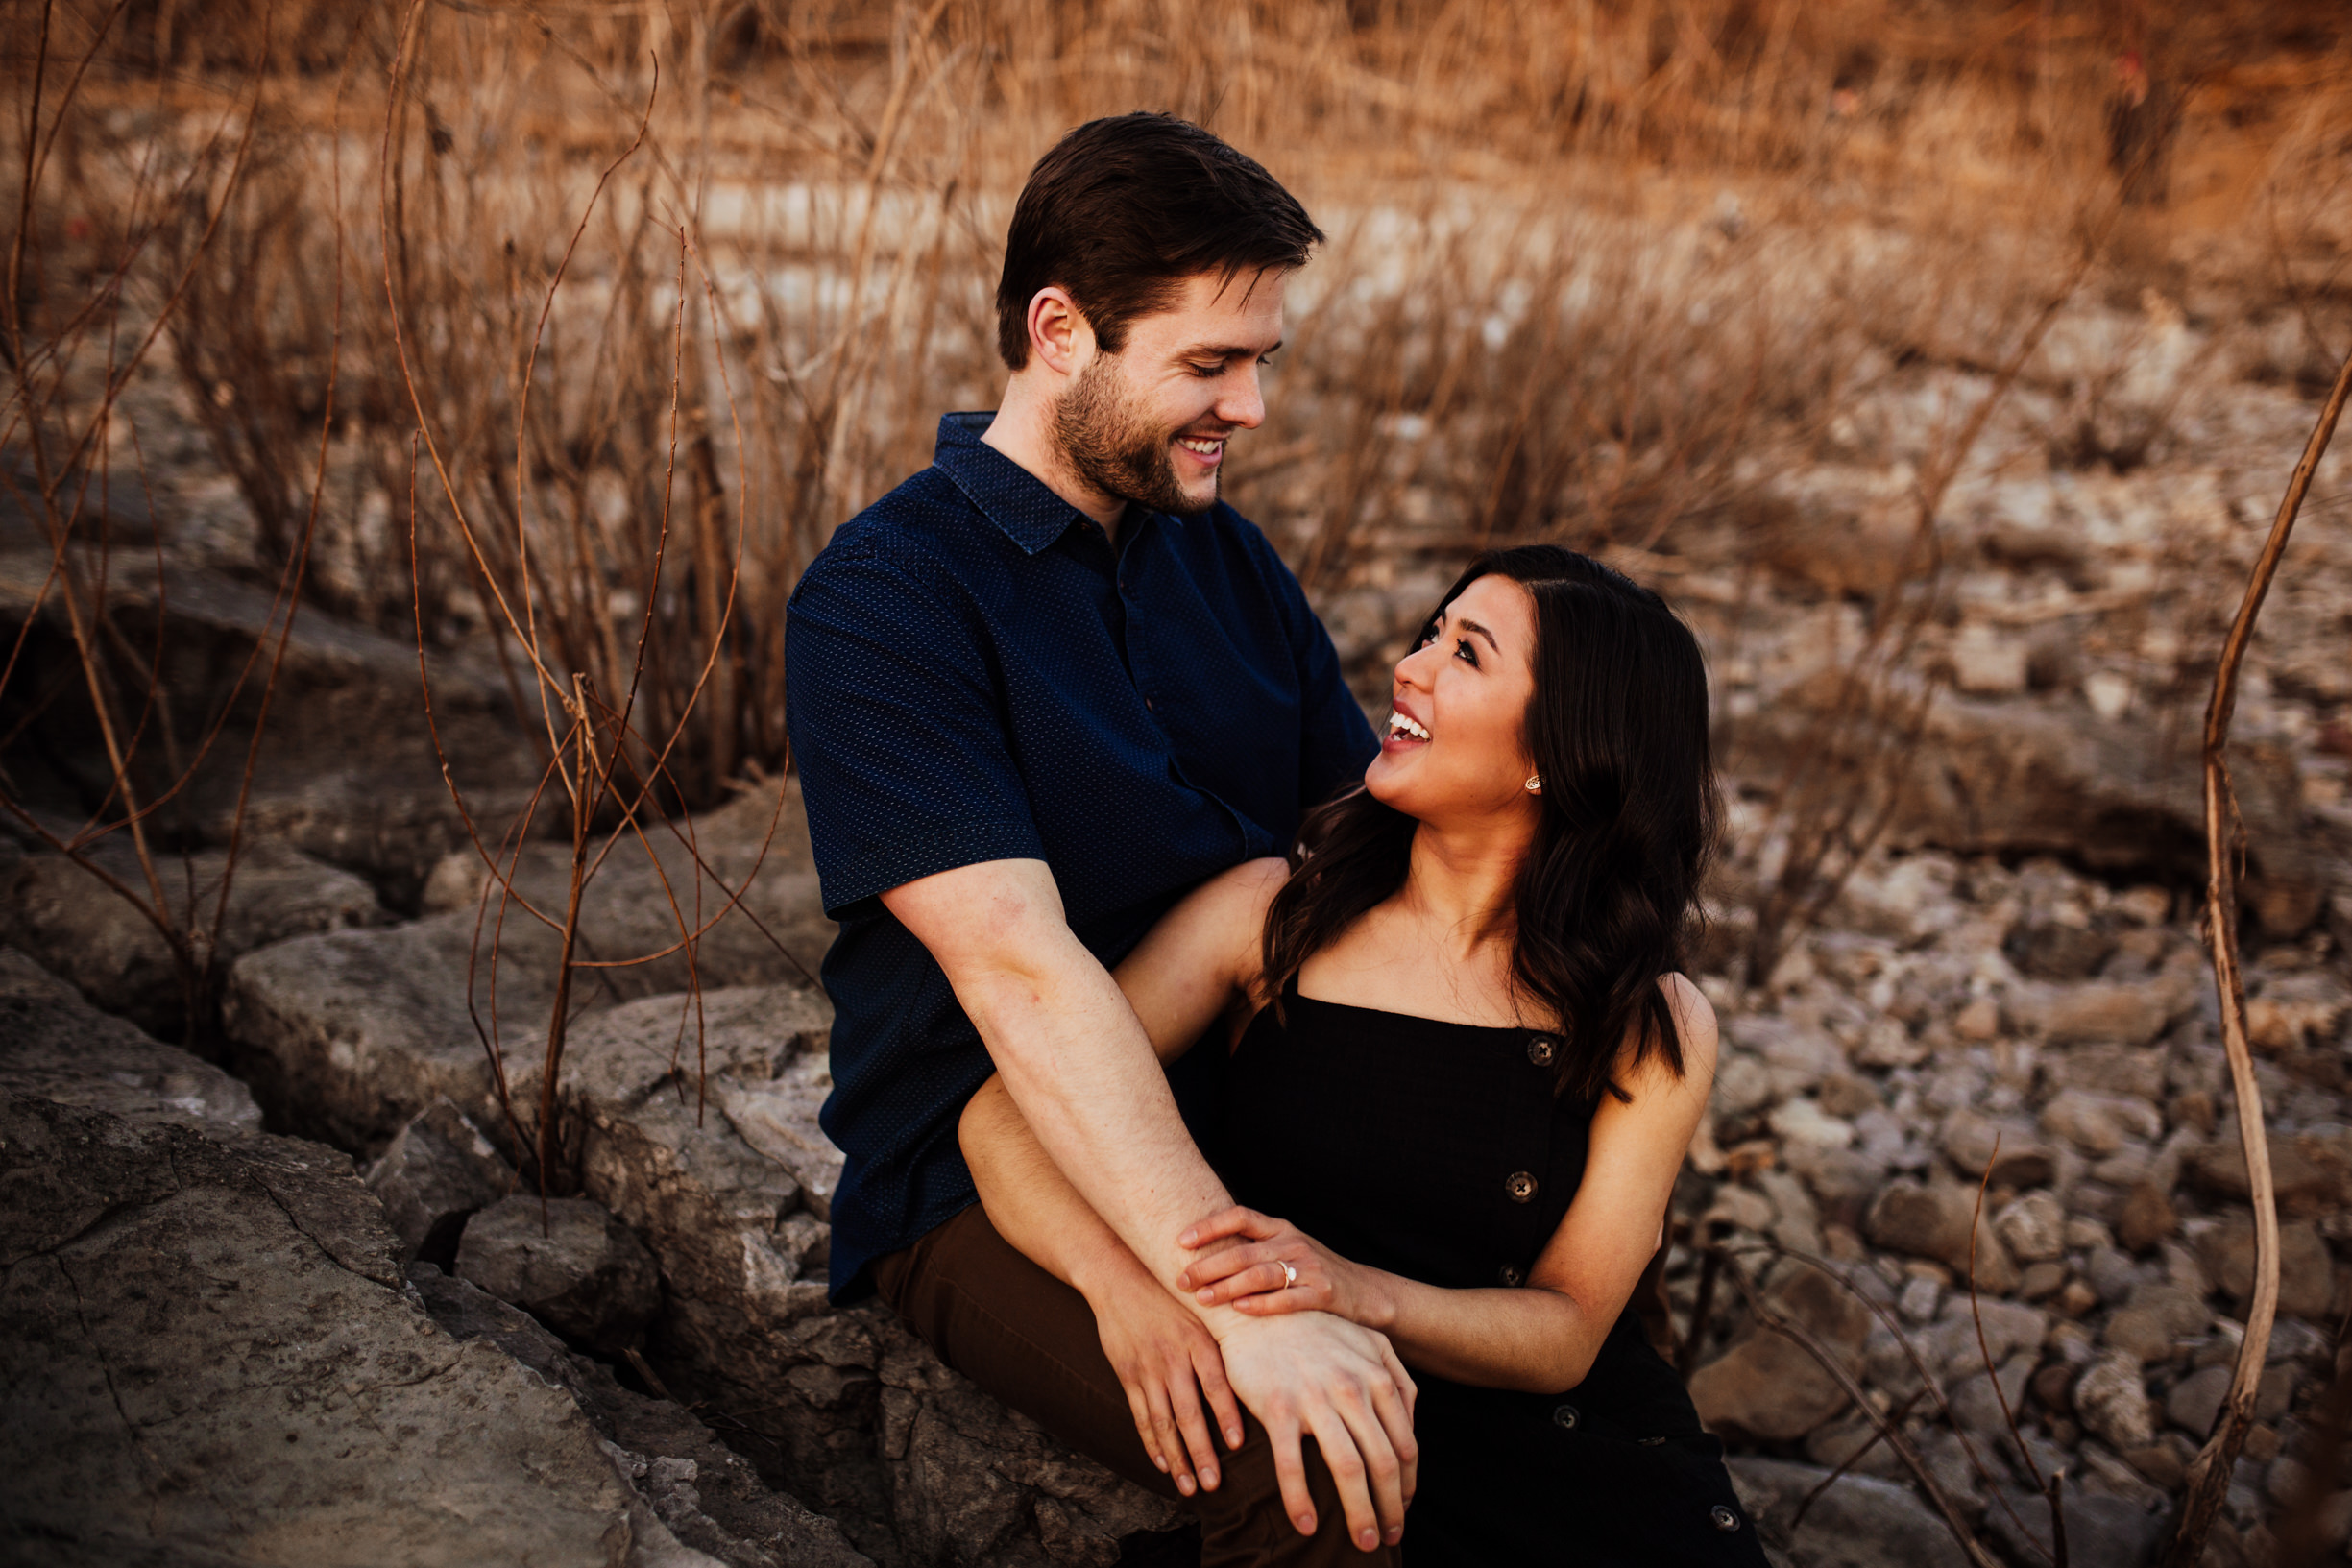 louisville-engagement-photographer-crystal-ludwick-photo-tammy-and-caleb-engagement-photography (26 of 32).jpg